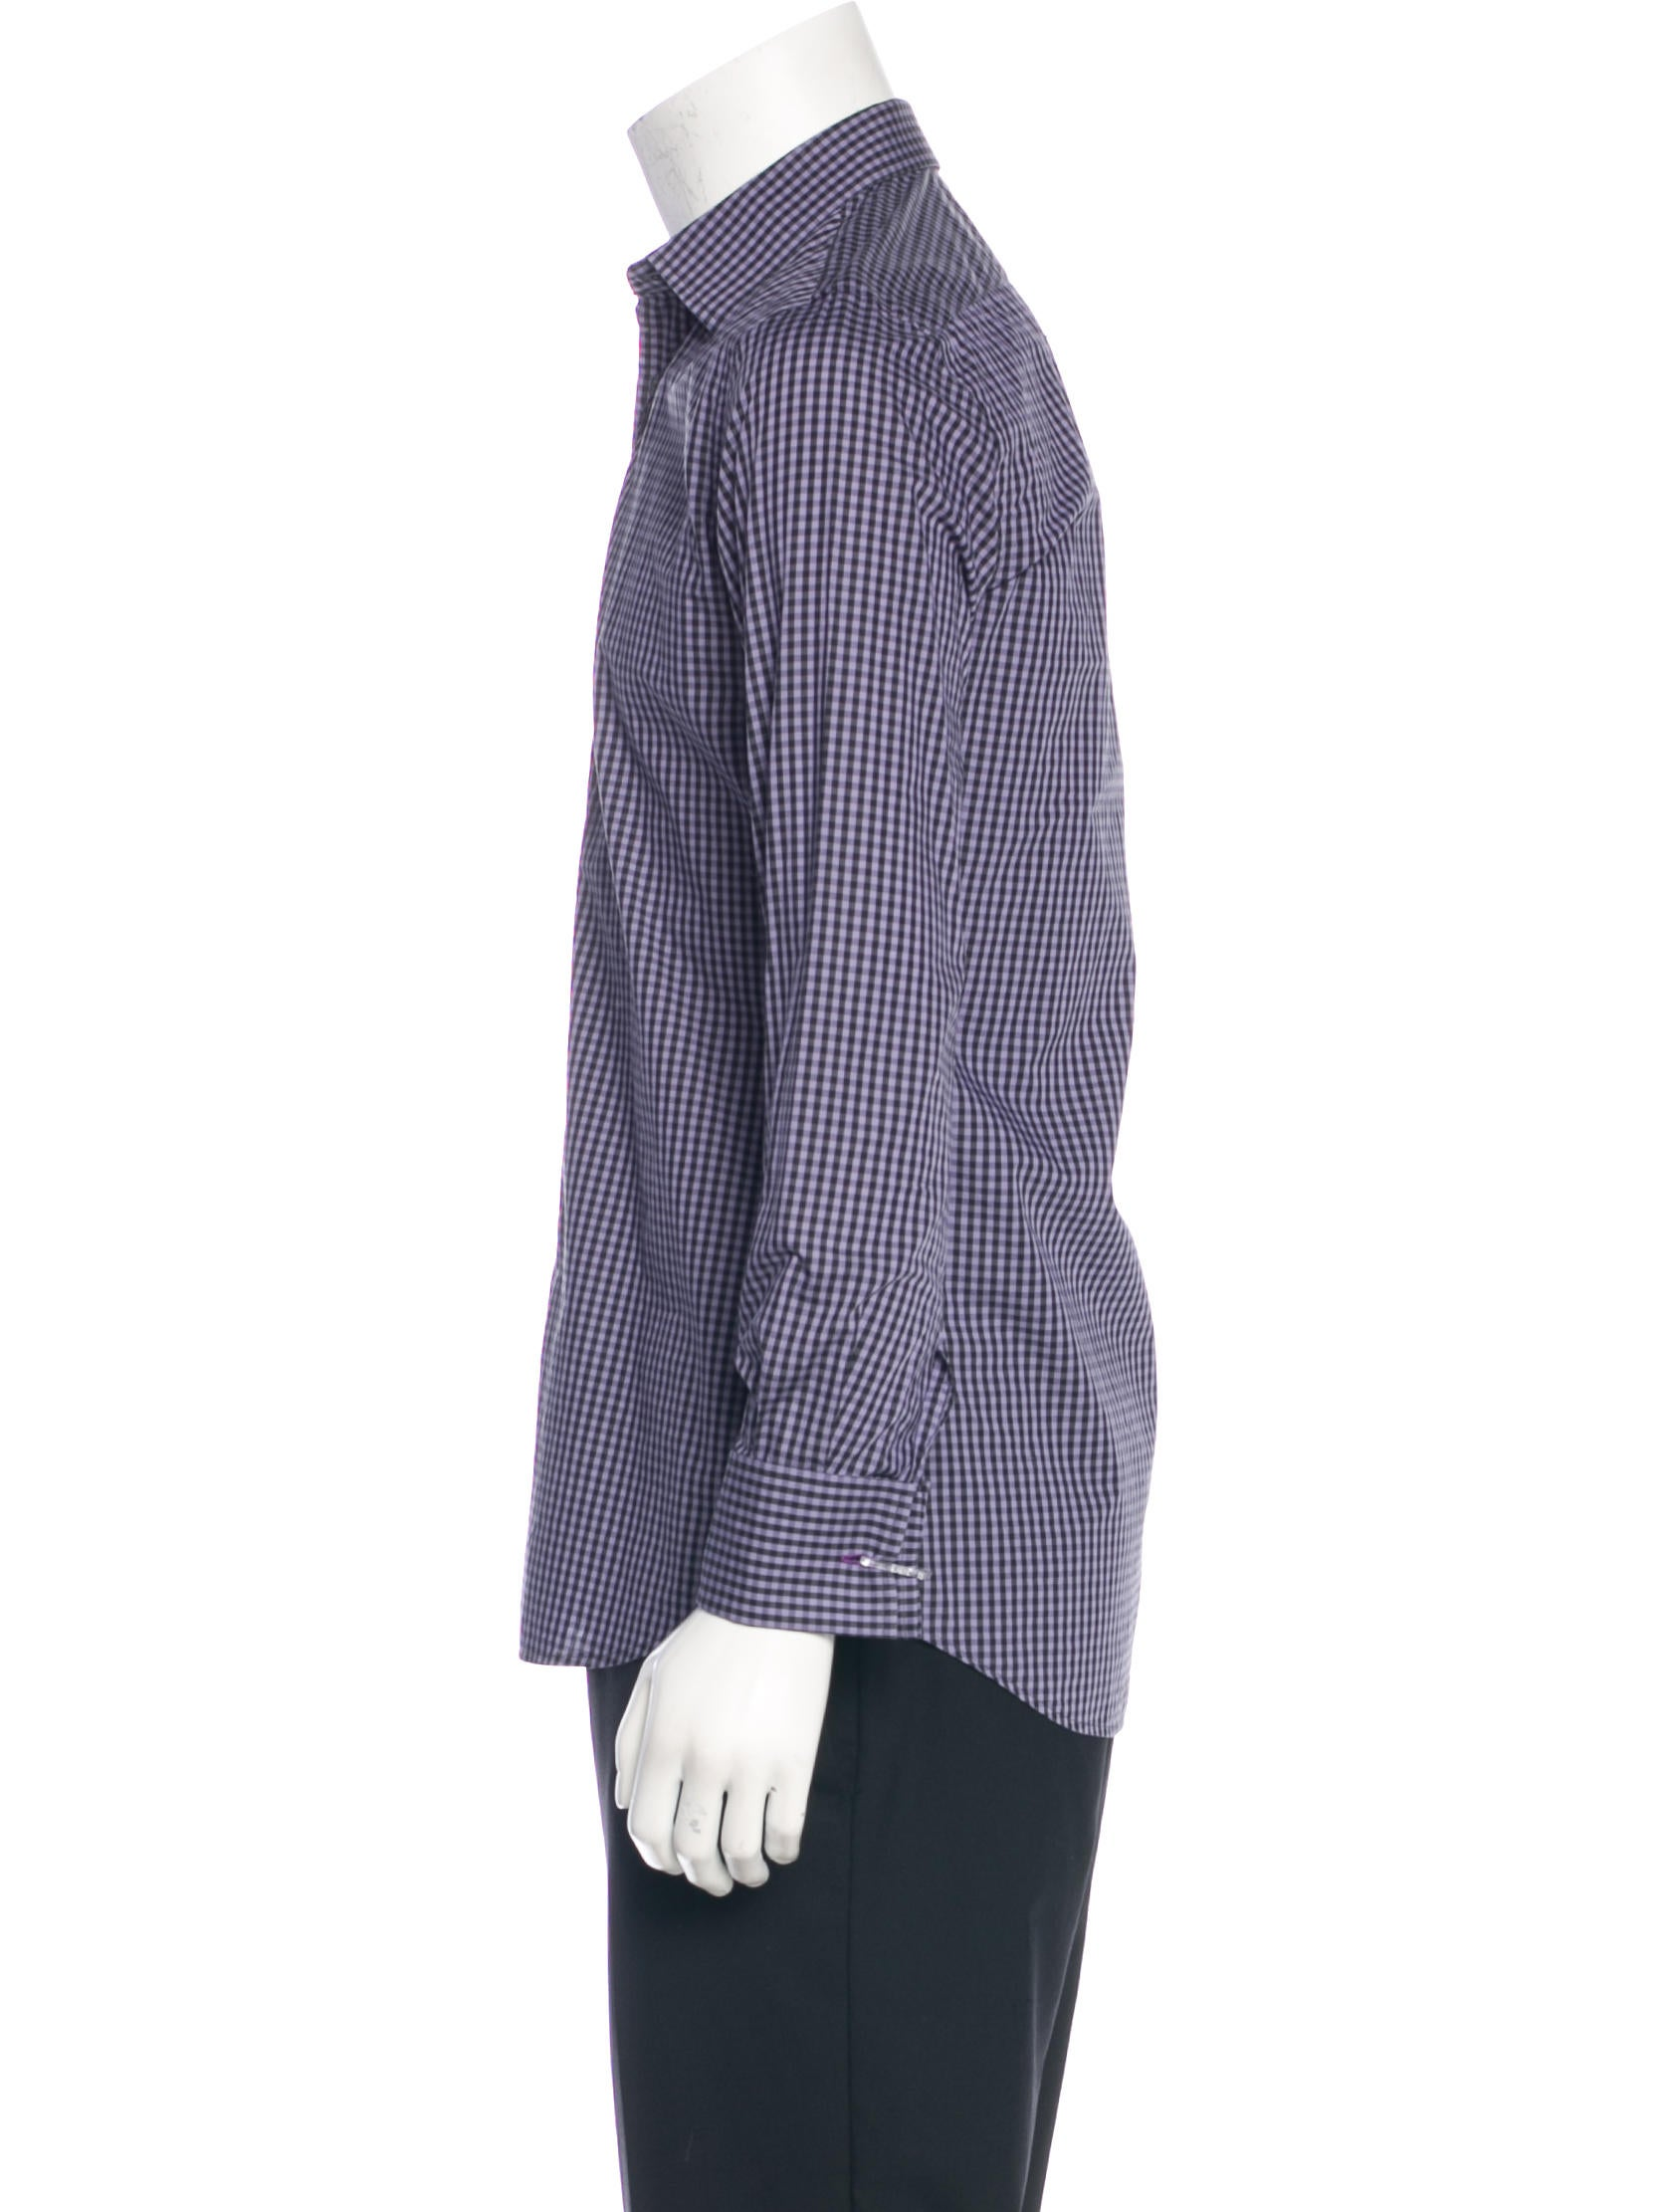 Paul smith slim fit french cuff gingham shirt clothing for Gingham french cuff shirt